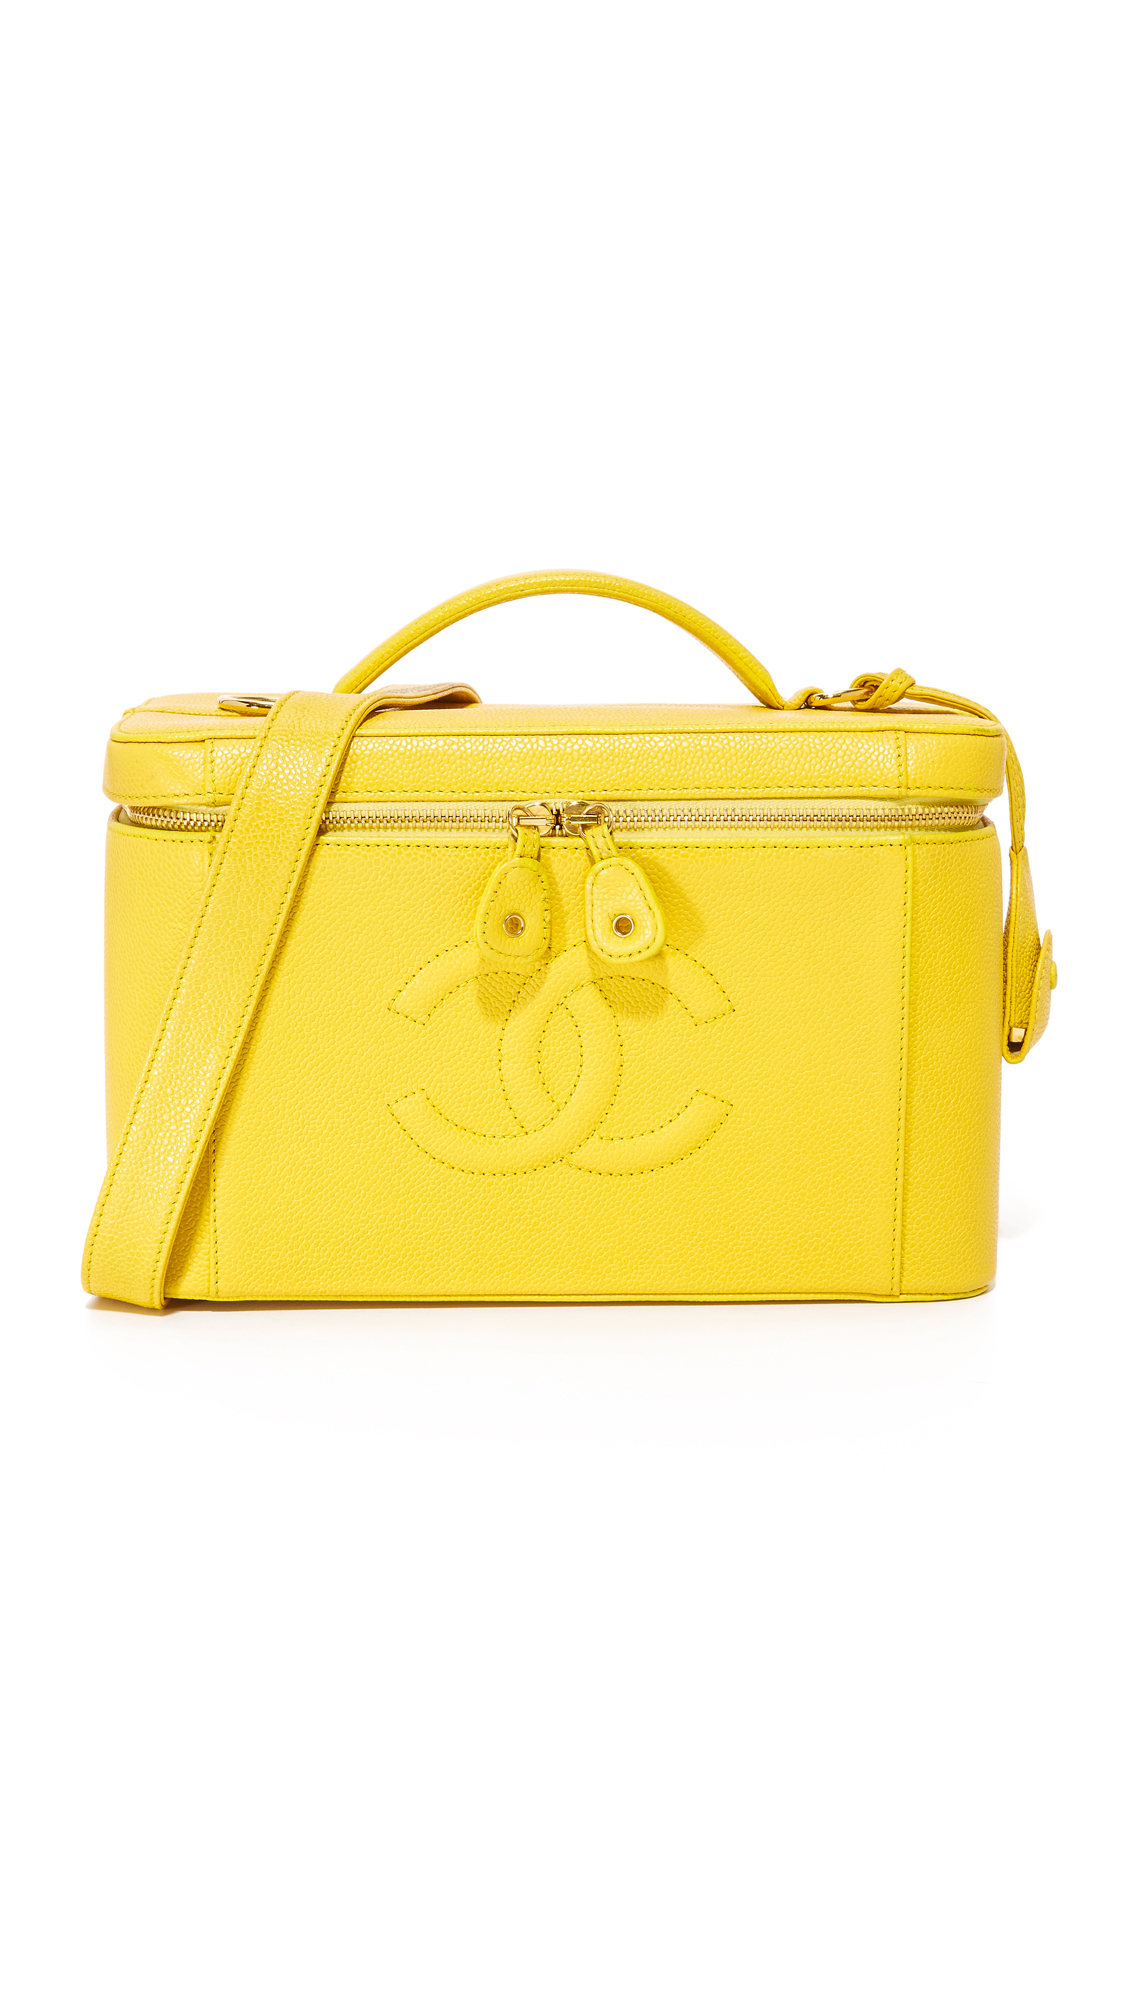 What Goes Around Comes Around Chanel Caviar Vanity Bag (Previously Owned) - Yellow